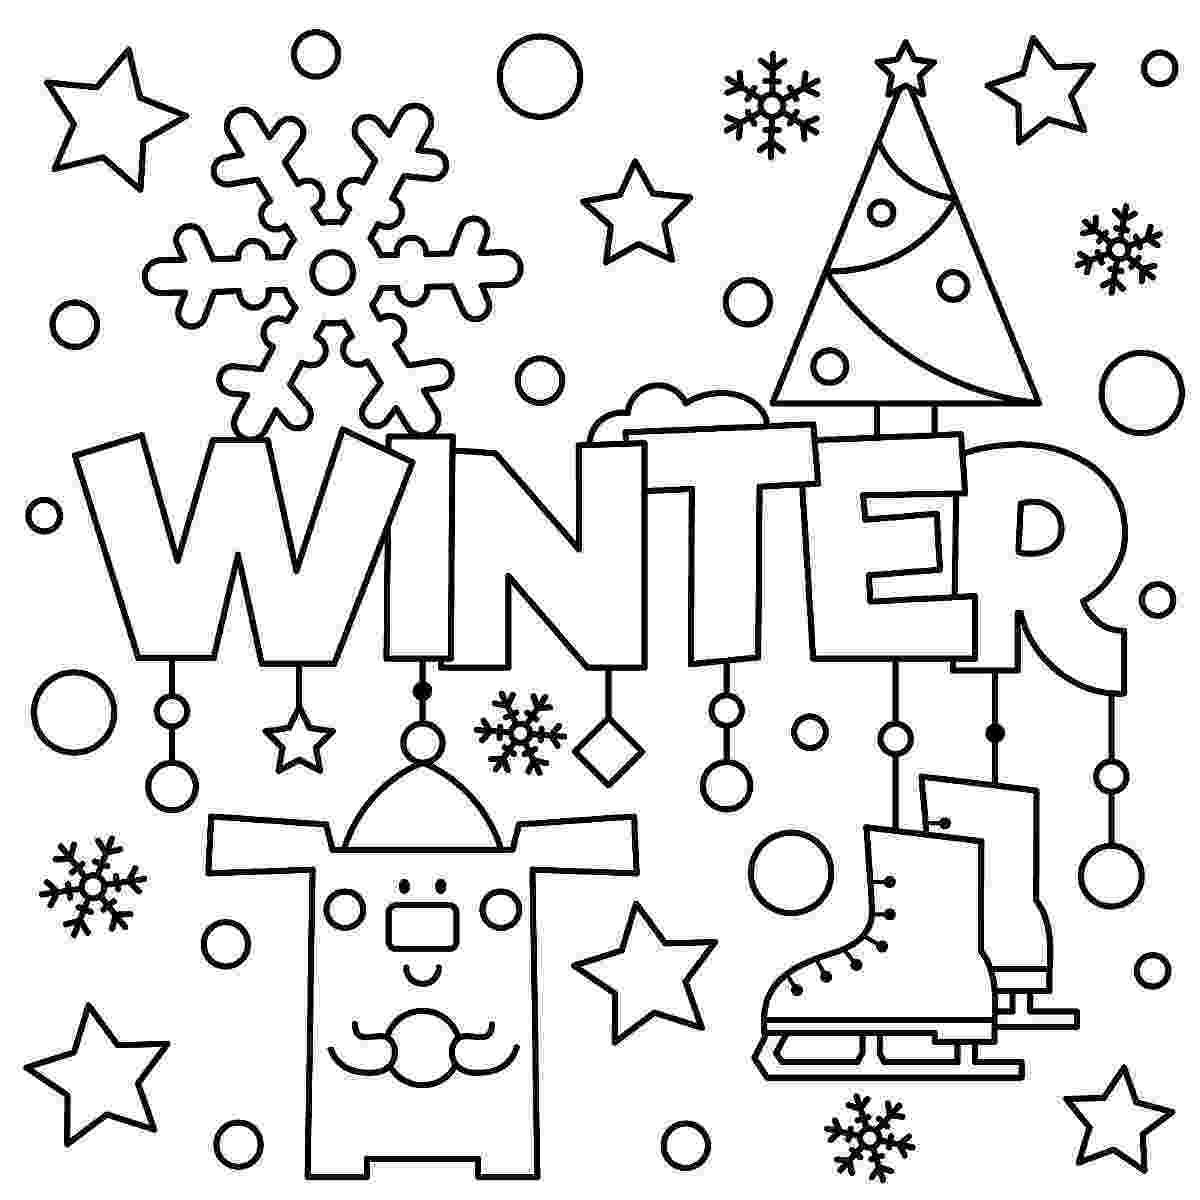 winter printable coloring pages free winter color sheet coloring pages winter coloring pages pages free coloring printable winter